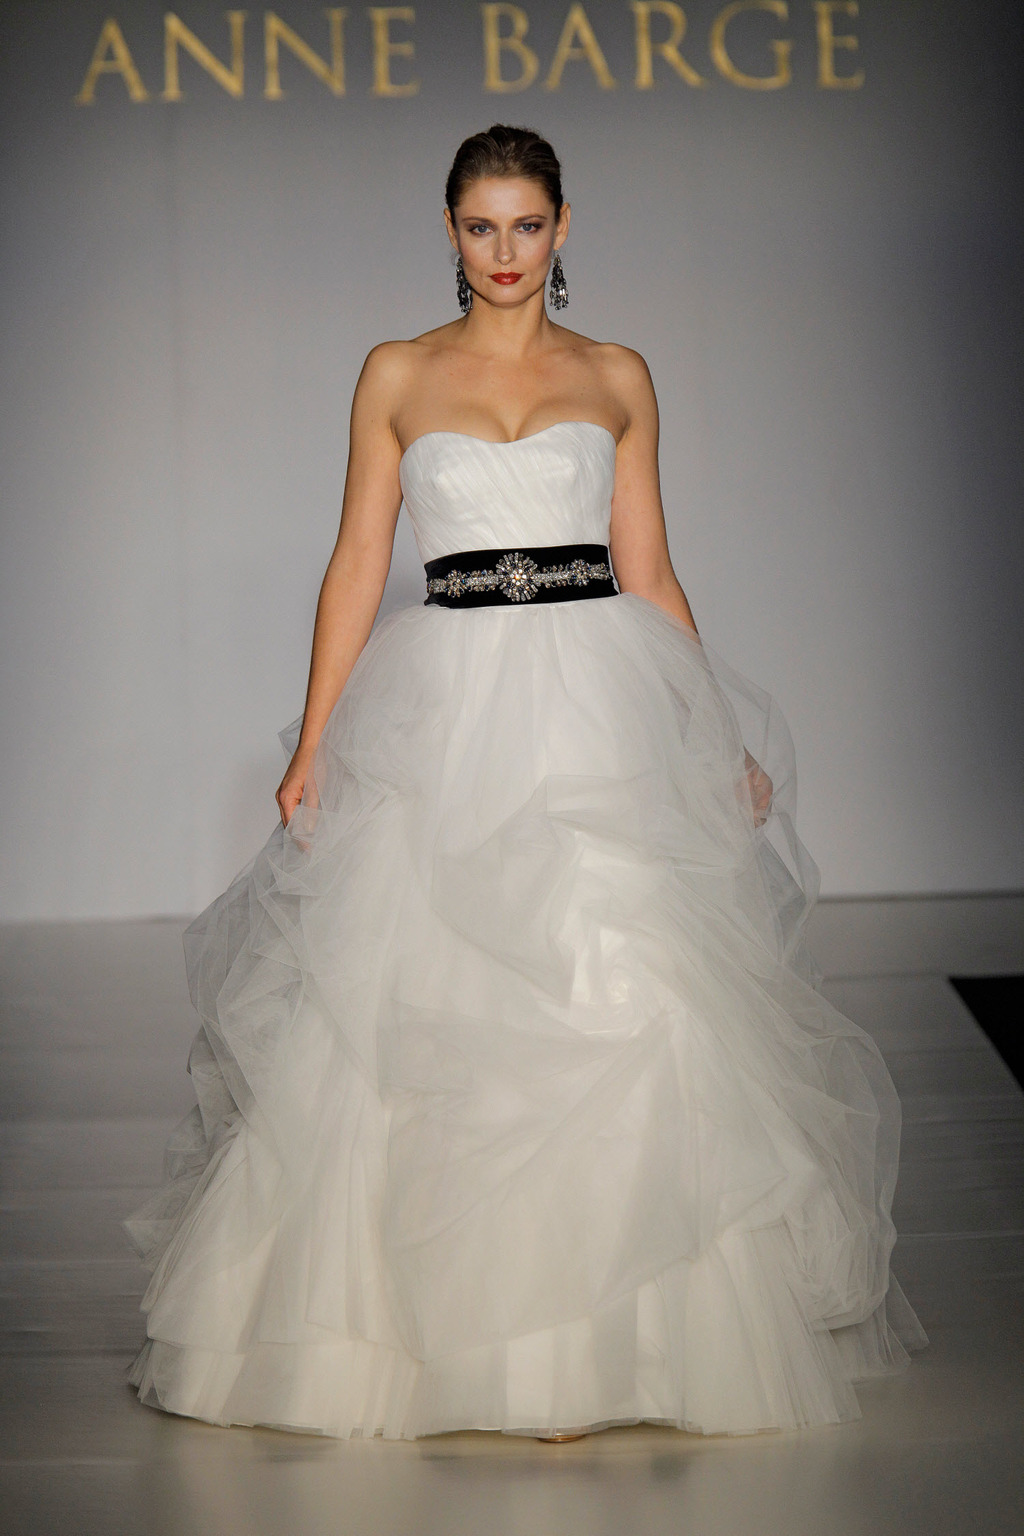 Fall-2011-wedding-dresses-anne-barge-drew-bridal-gown-white-classic-black-bridal-sash-sweetheart-neckline.full